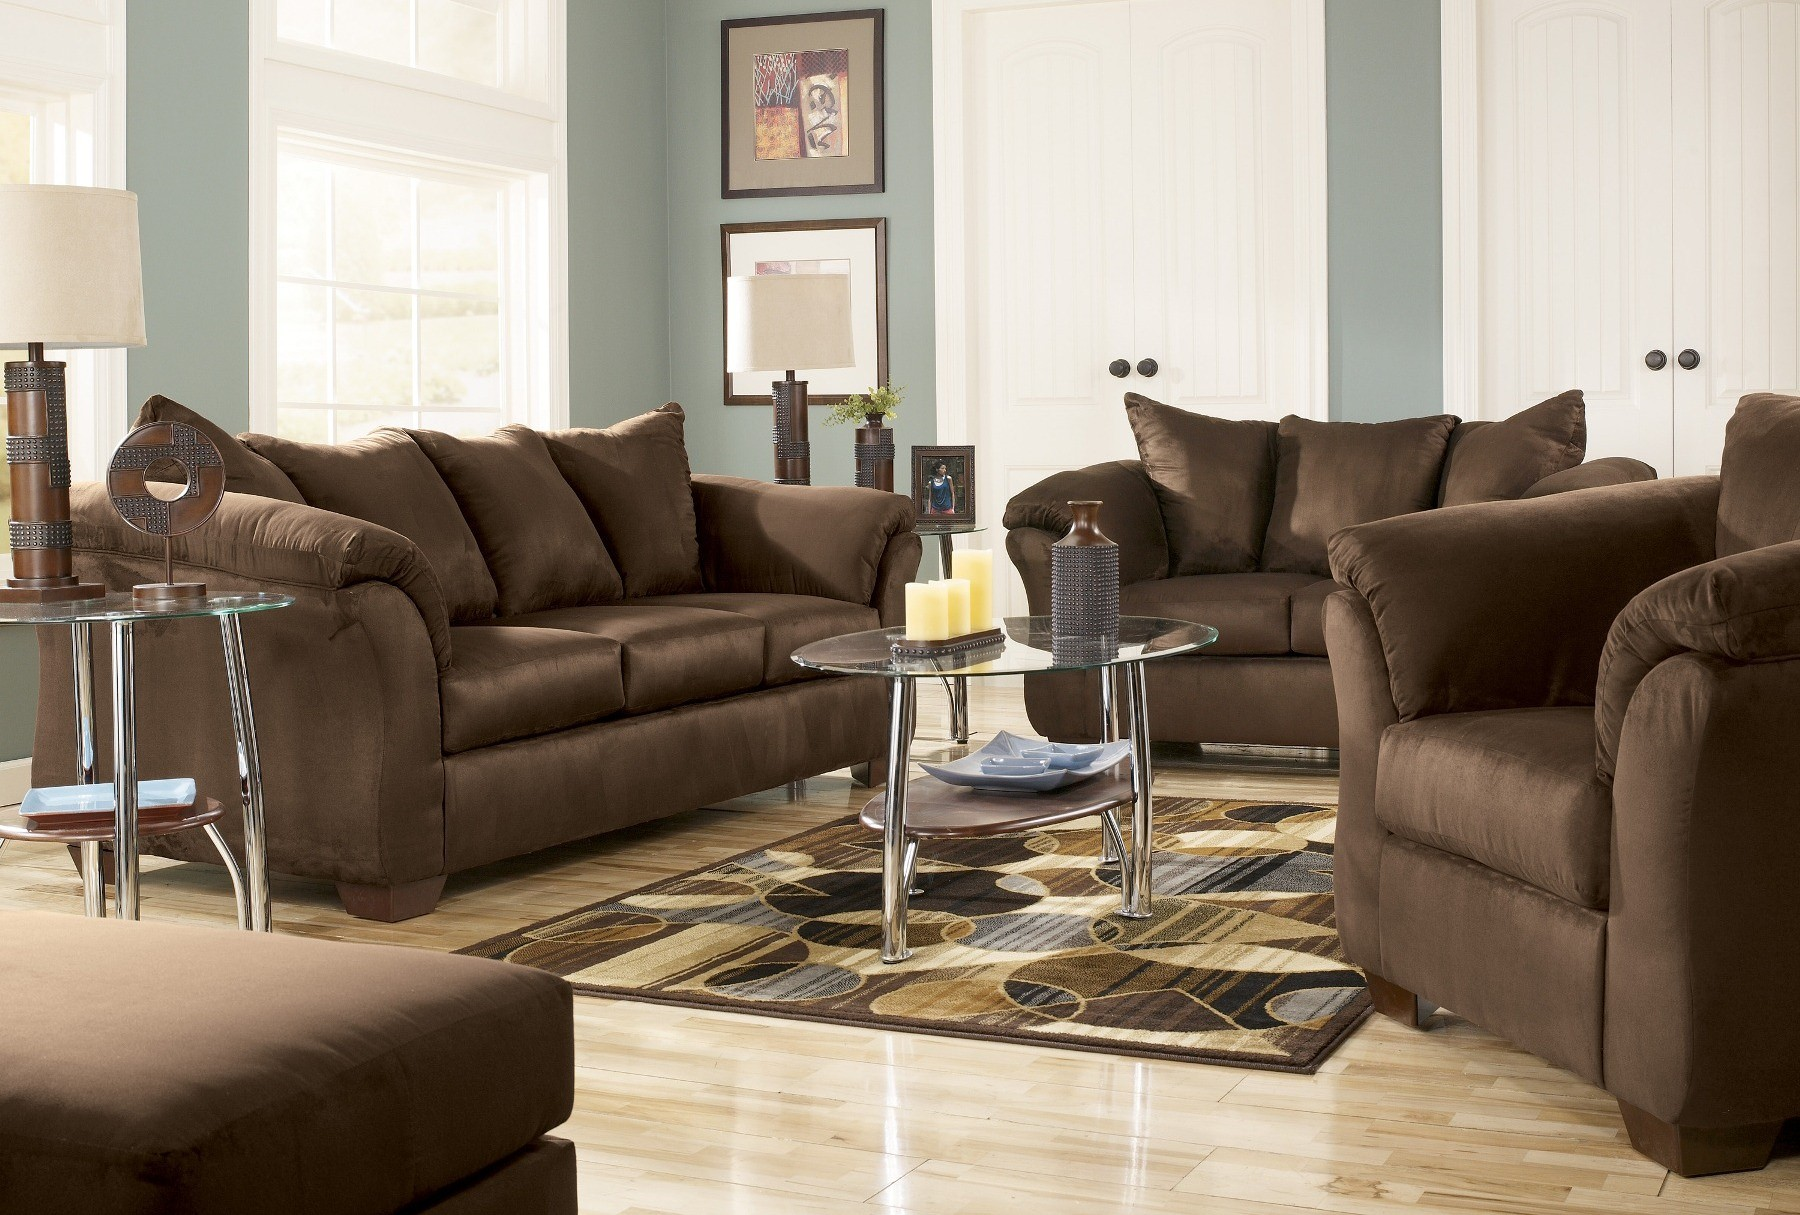 ashley darcy sleeper sofa review fabric cushions on leather cafe living room set from (75004) | coleman ...